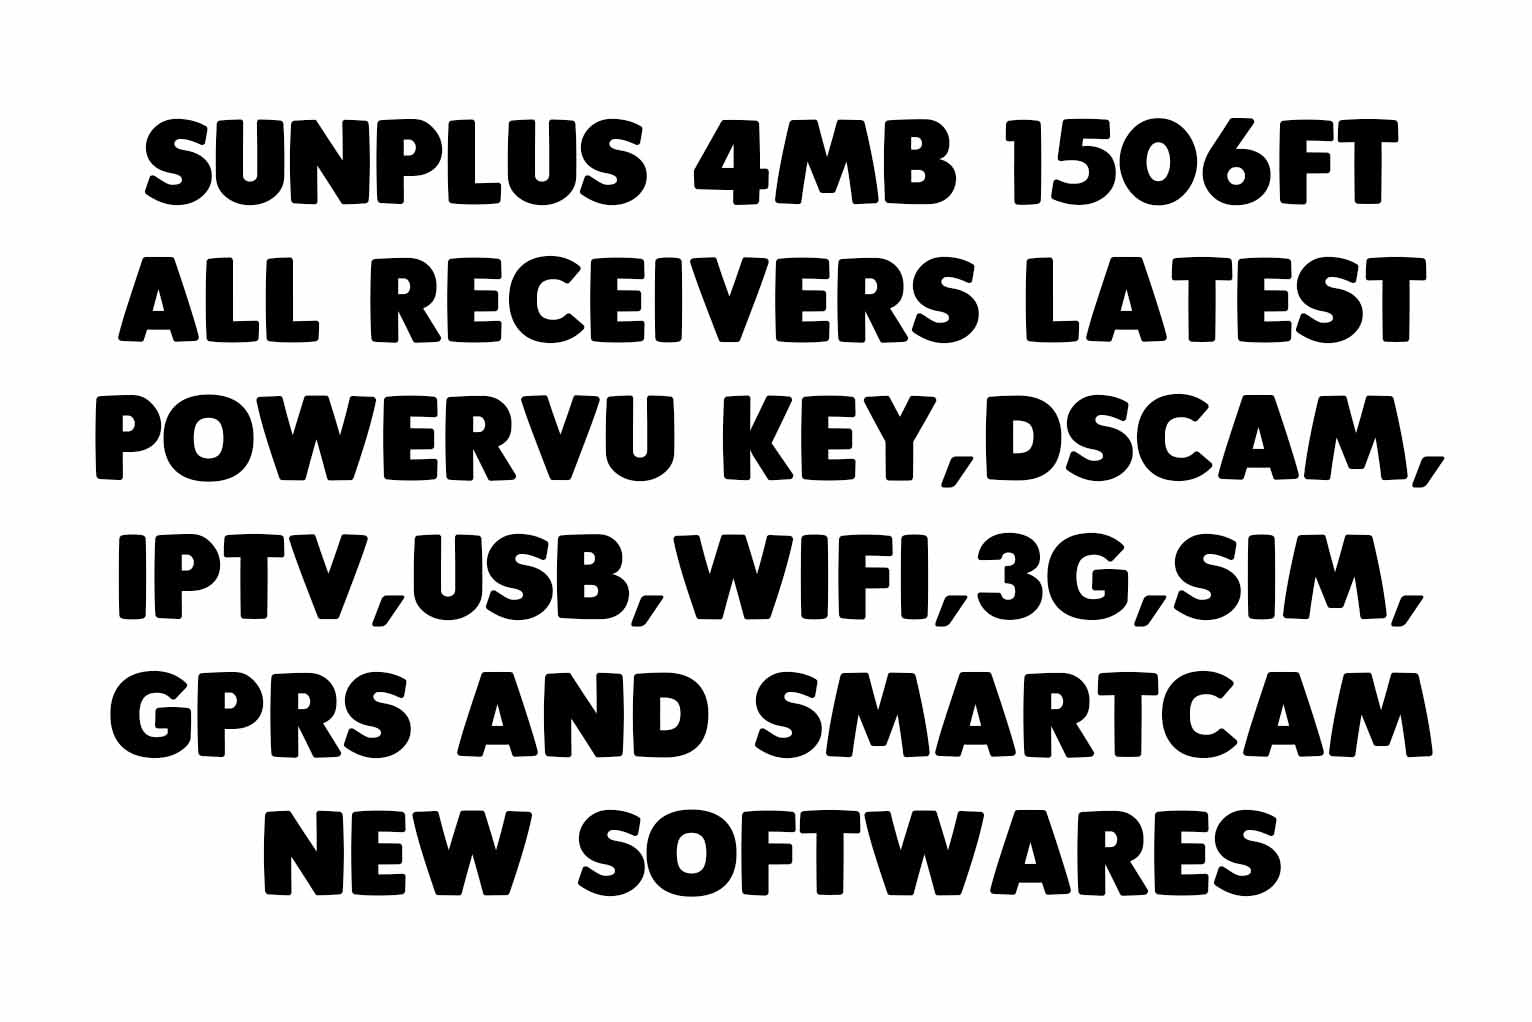 Sunplus 1506TF 4MB All Receivers Latest PowerVU Key New Softwares